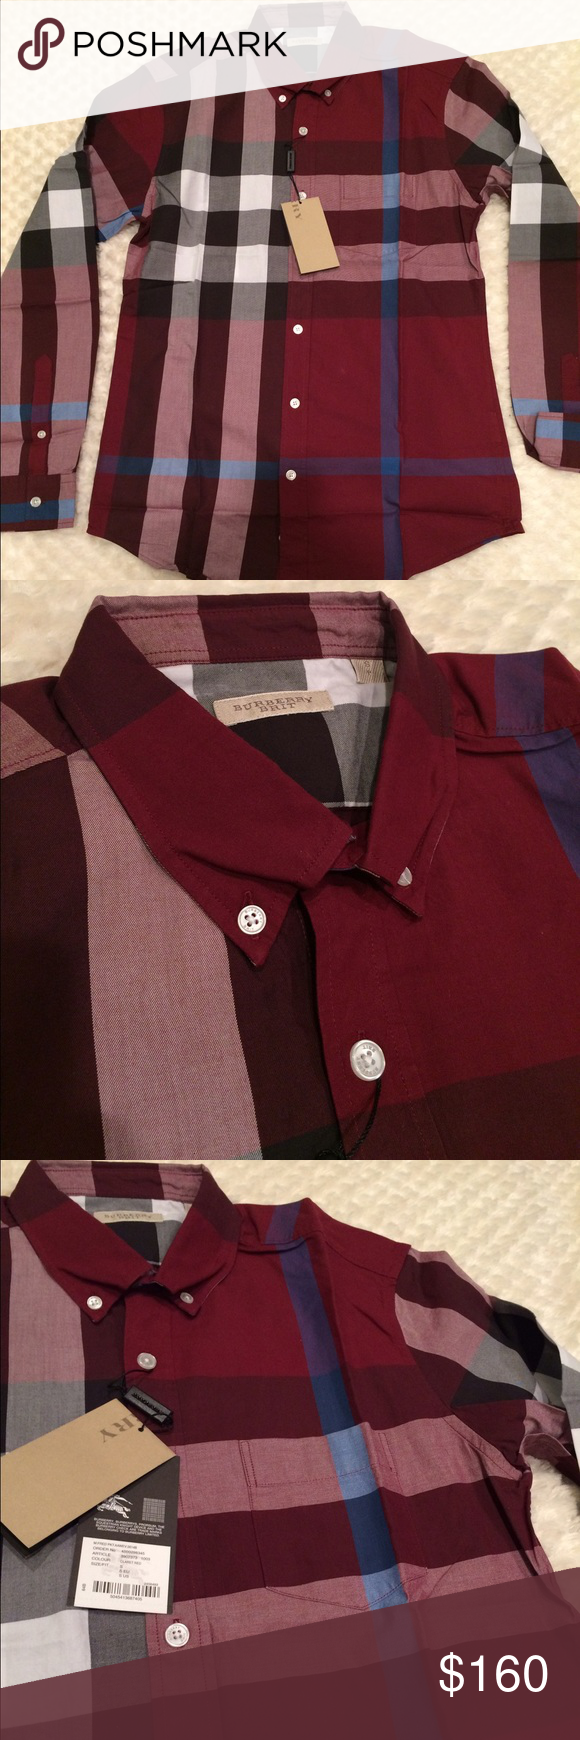 New burberry shirt for men S New with tags burberry shirt size small  100%cotton long sleeves Burberry Tops Button Down Shirts 5bcd249b7f4b